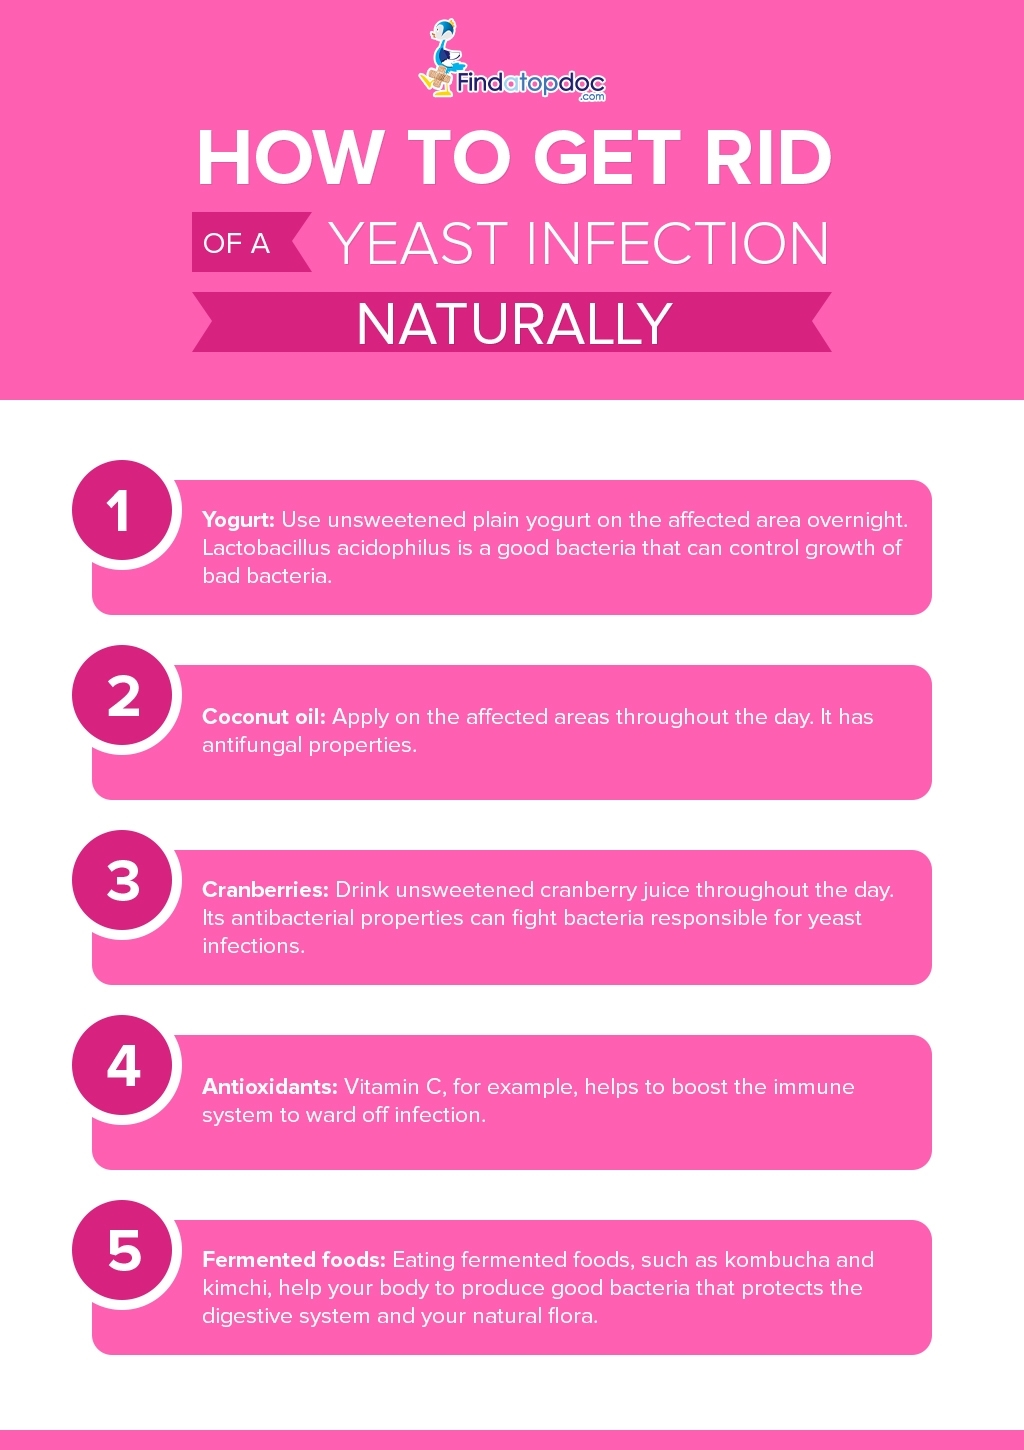 How to Get Rid of a Yeast Infection Naturally